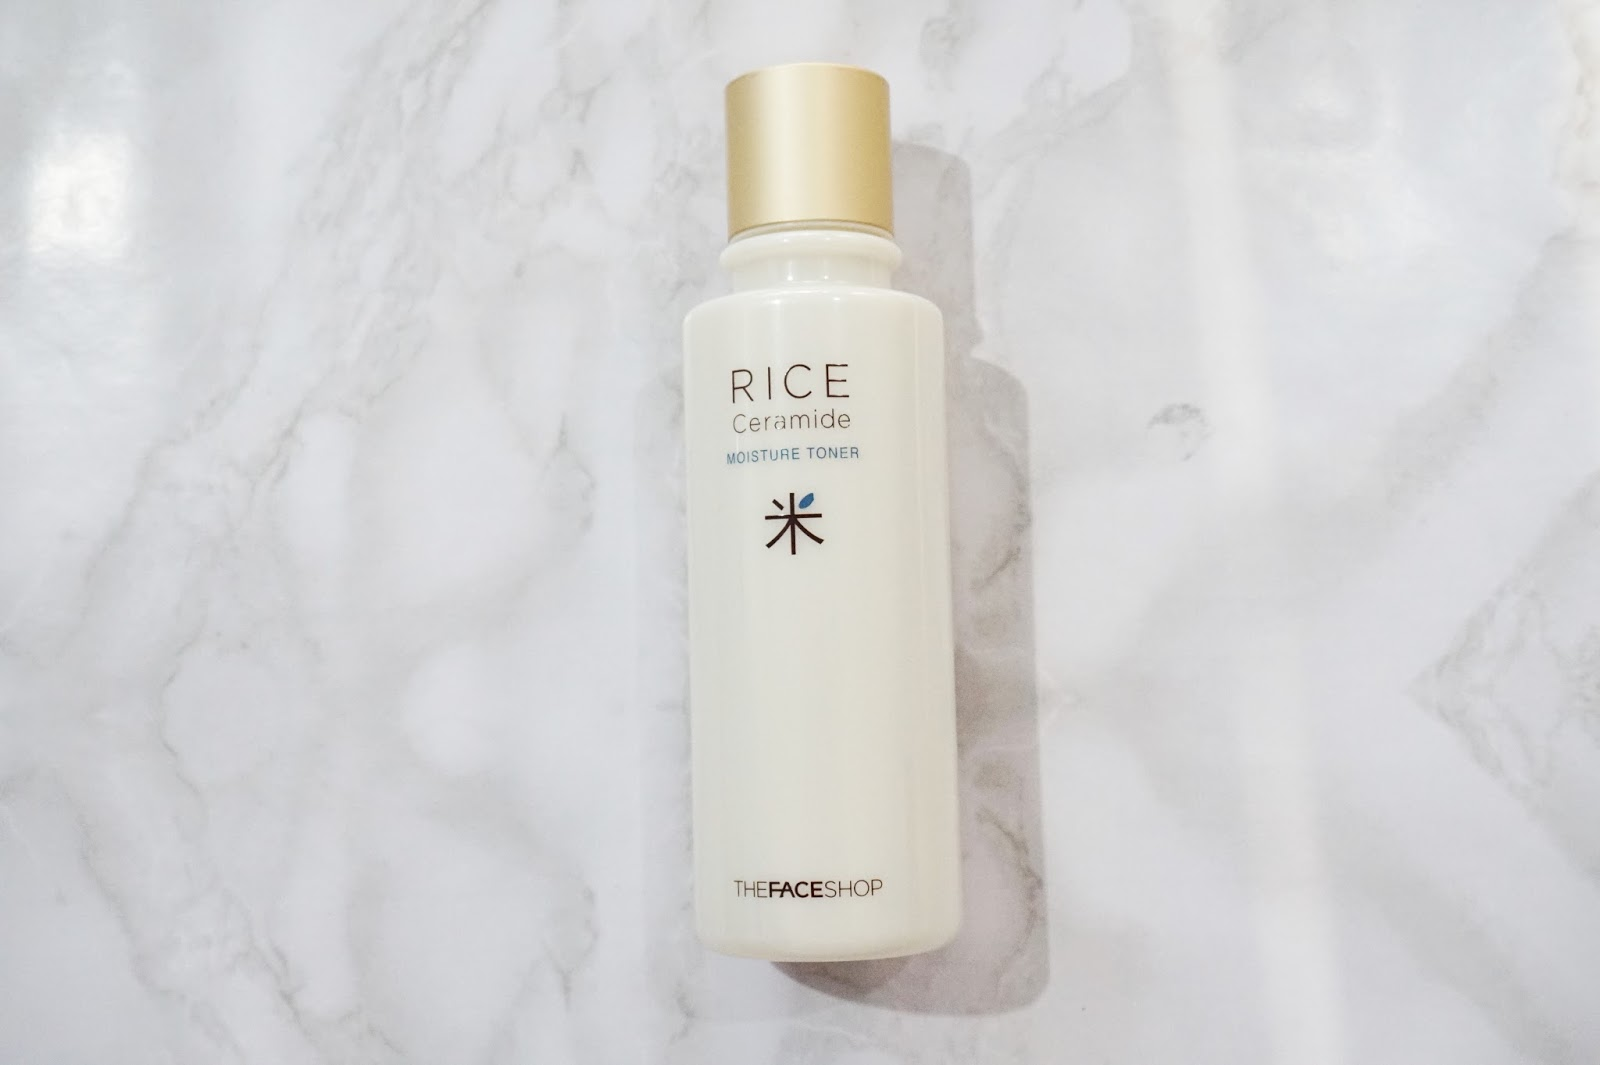 the face shop rice ceramide moisture toner review